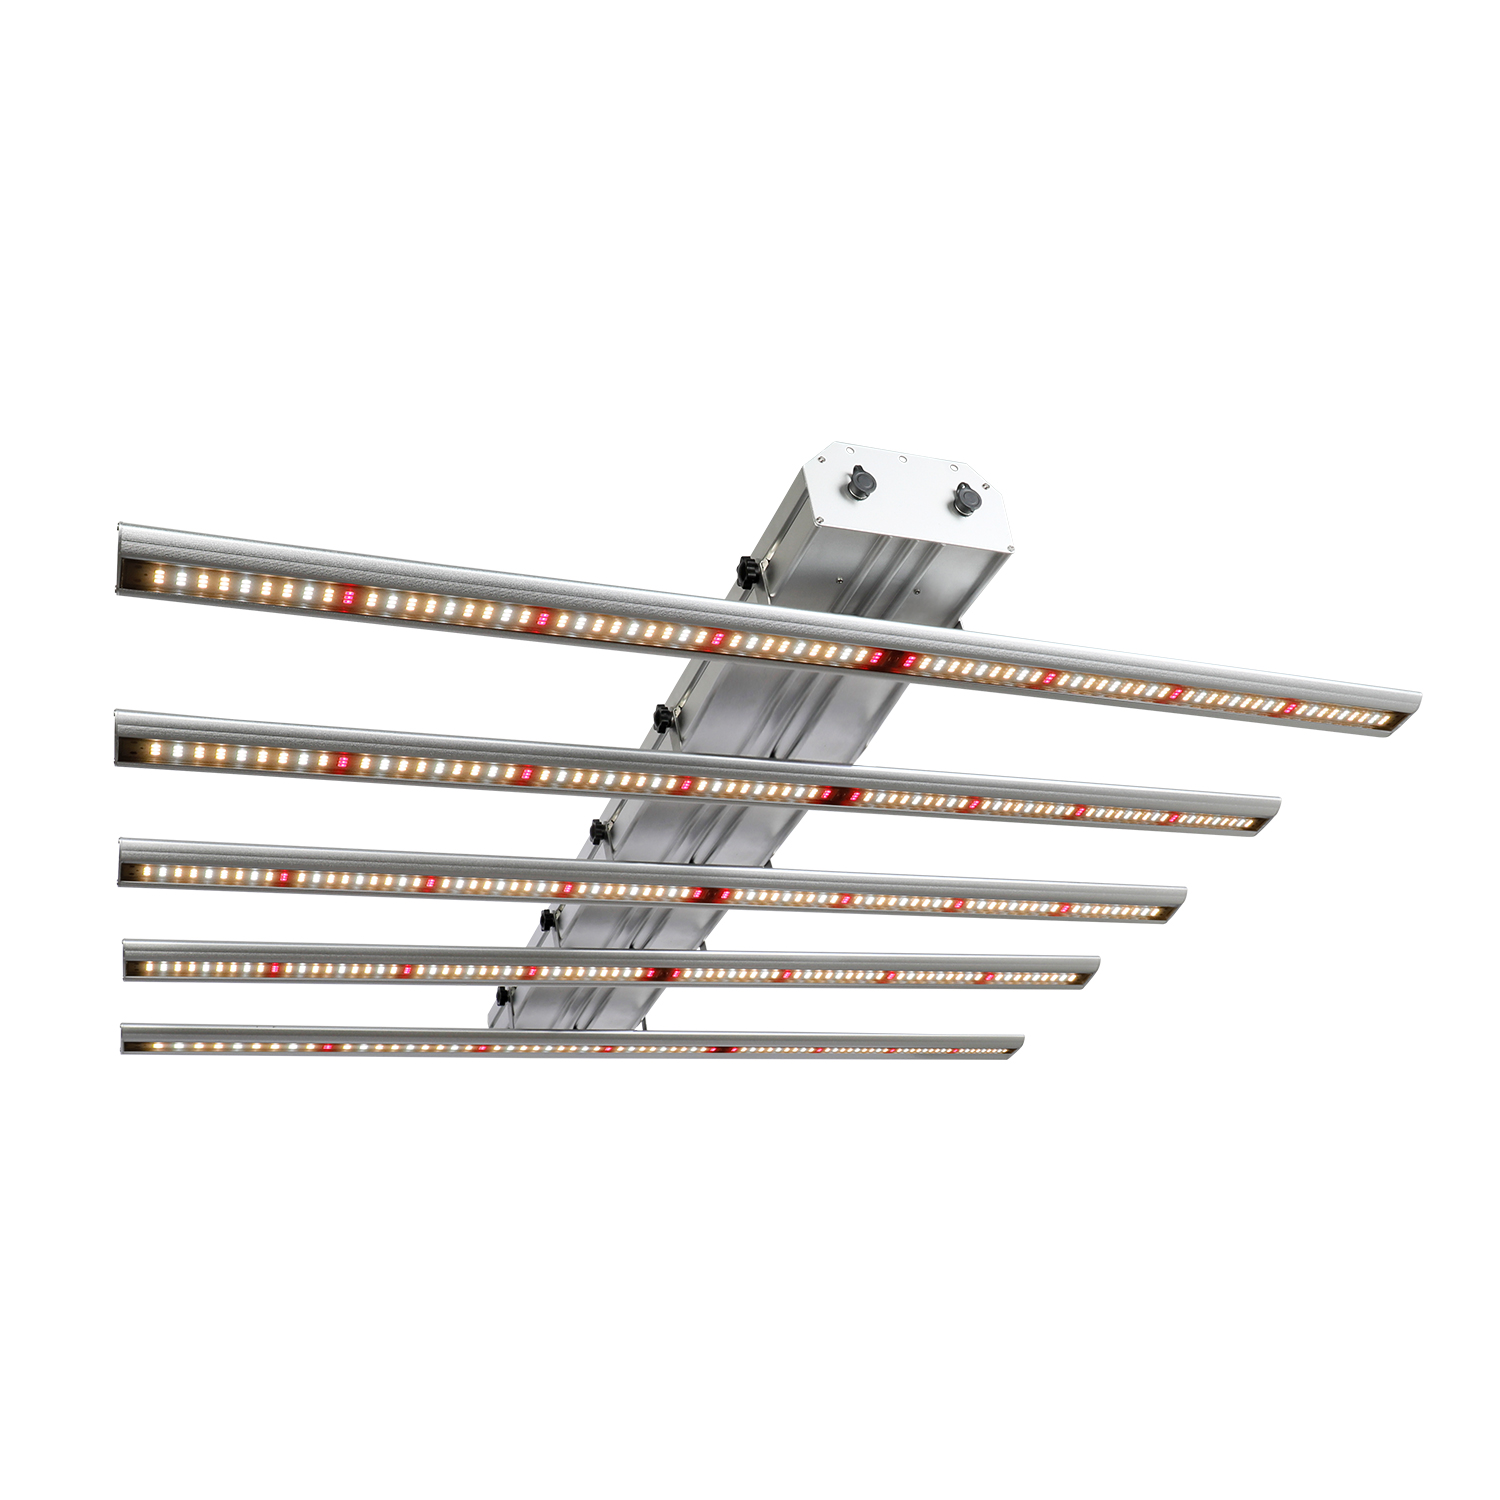 LED Grow Light Bar